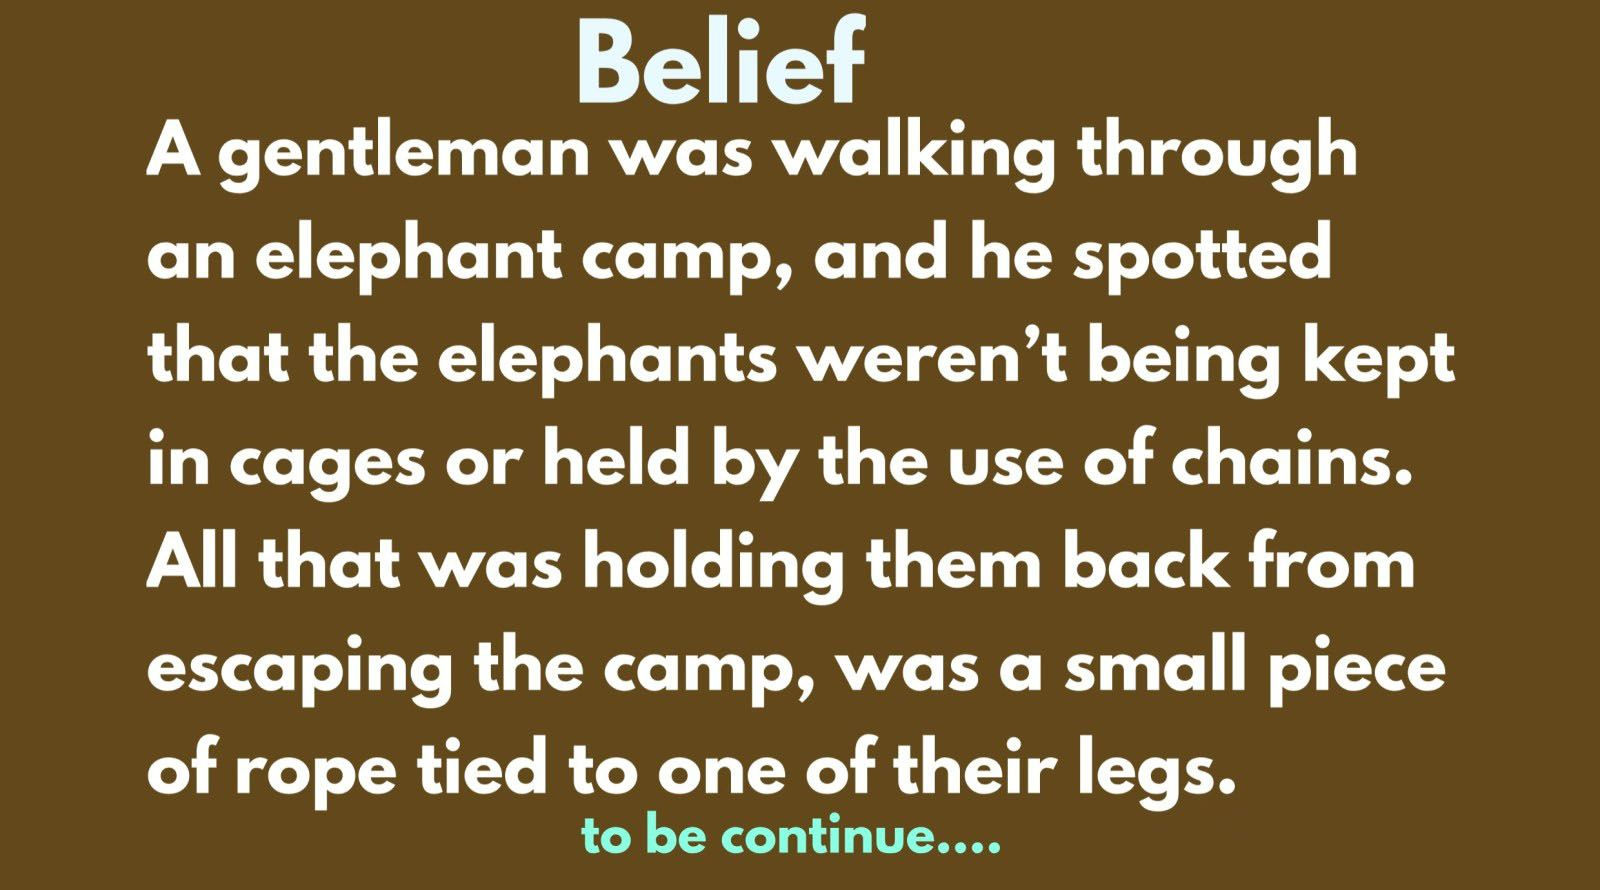 The Elephant Rope A Gentleman Wa Walking Through An Camp And He Spotted That Weren T Being Kept In 2020 Belief Inspirational Story Essay On